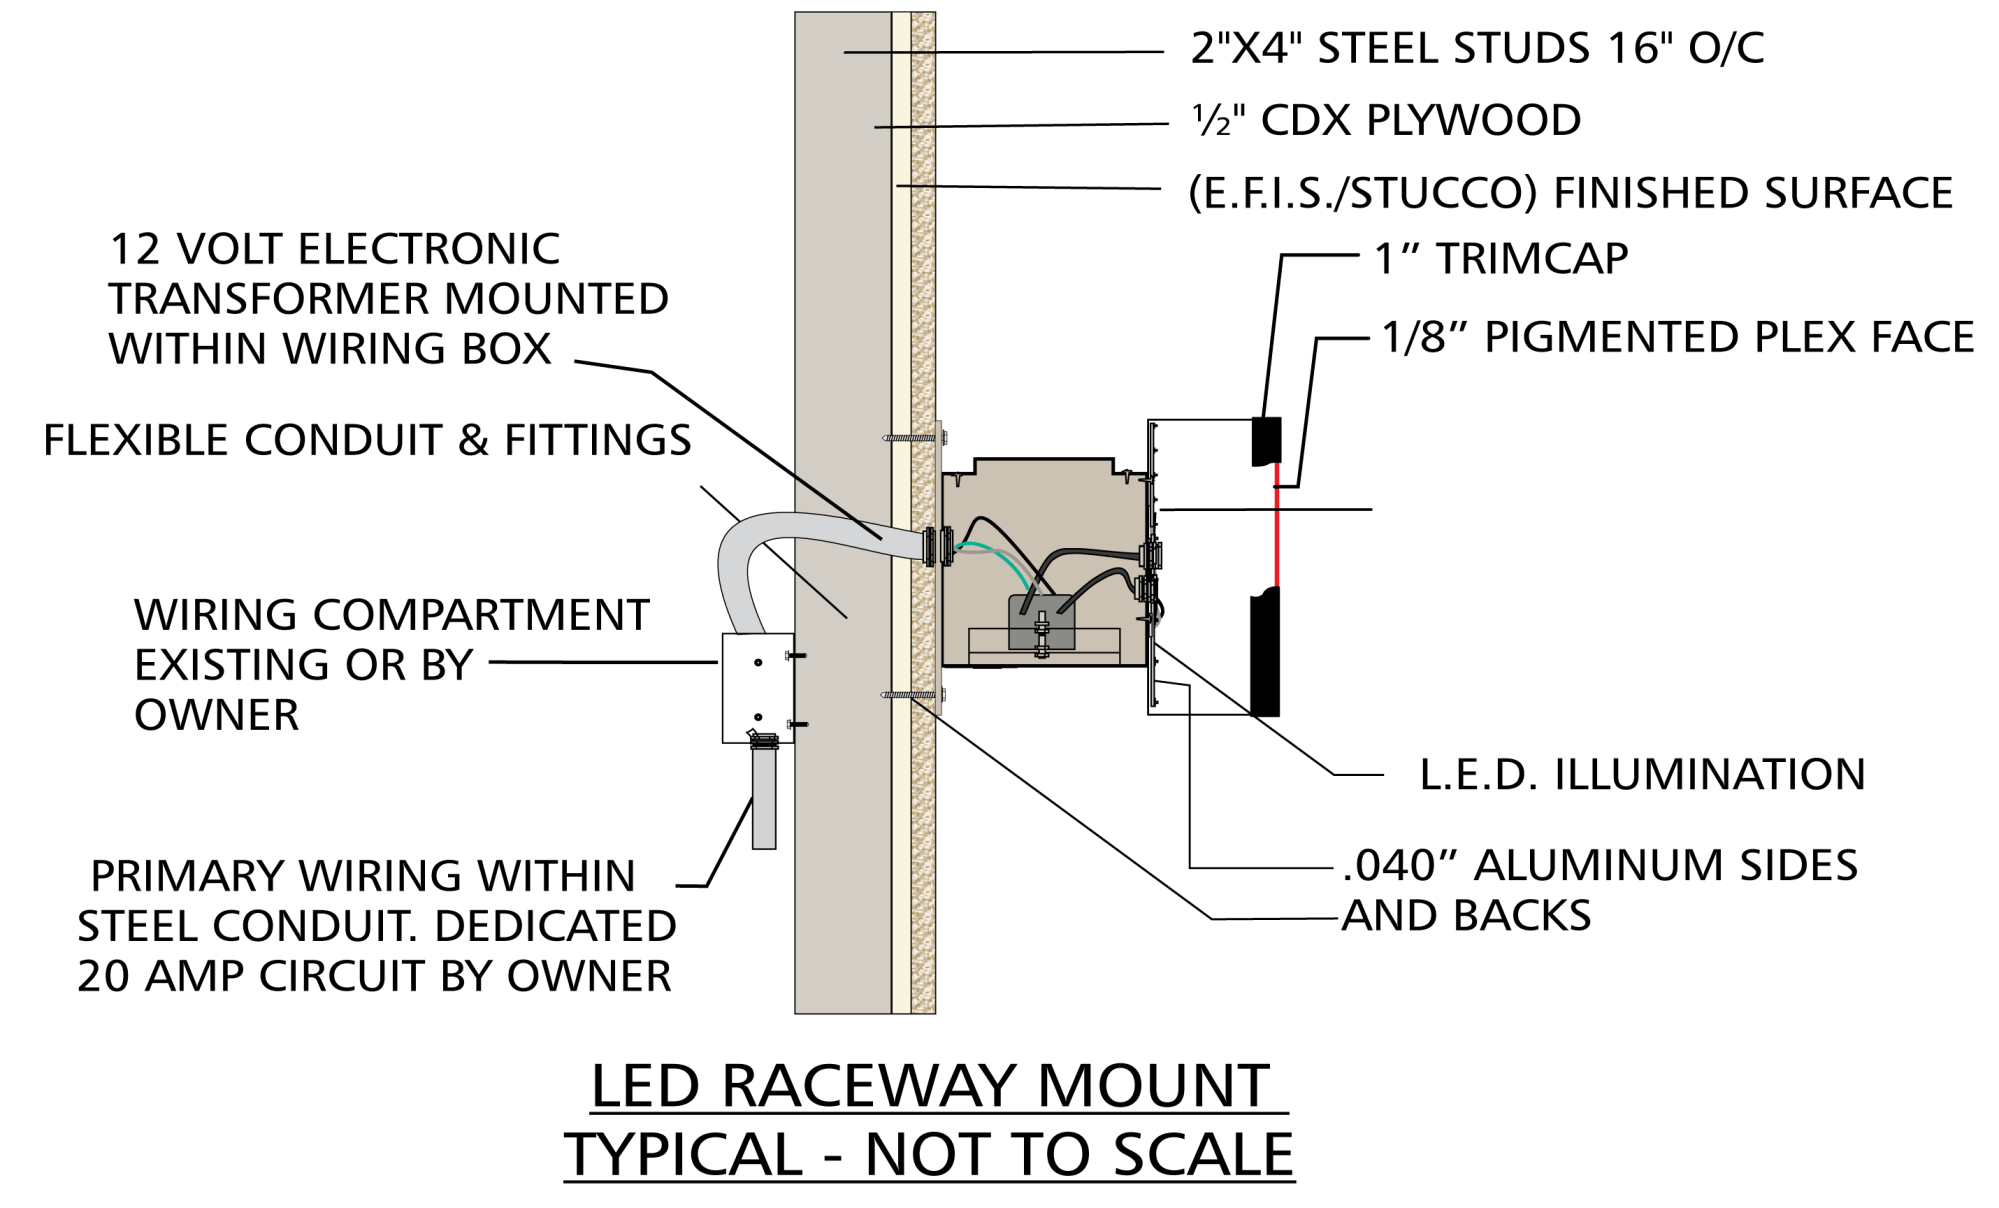 hight resolution of wiring diagram letters wiring diagram forward letter sign wiring diagrams